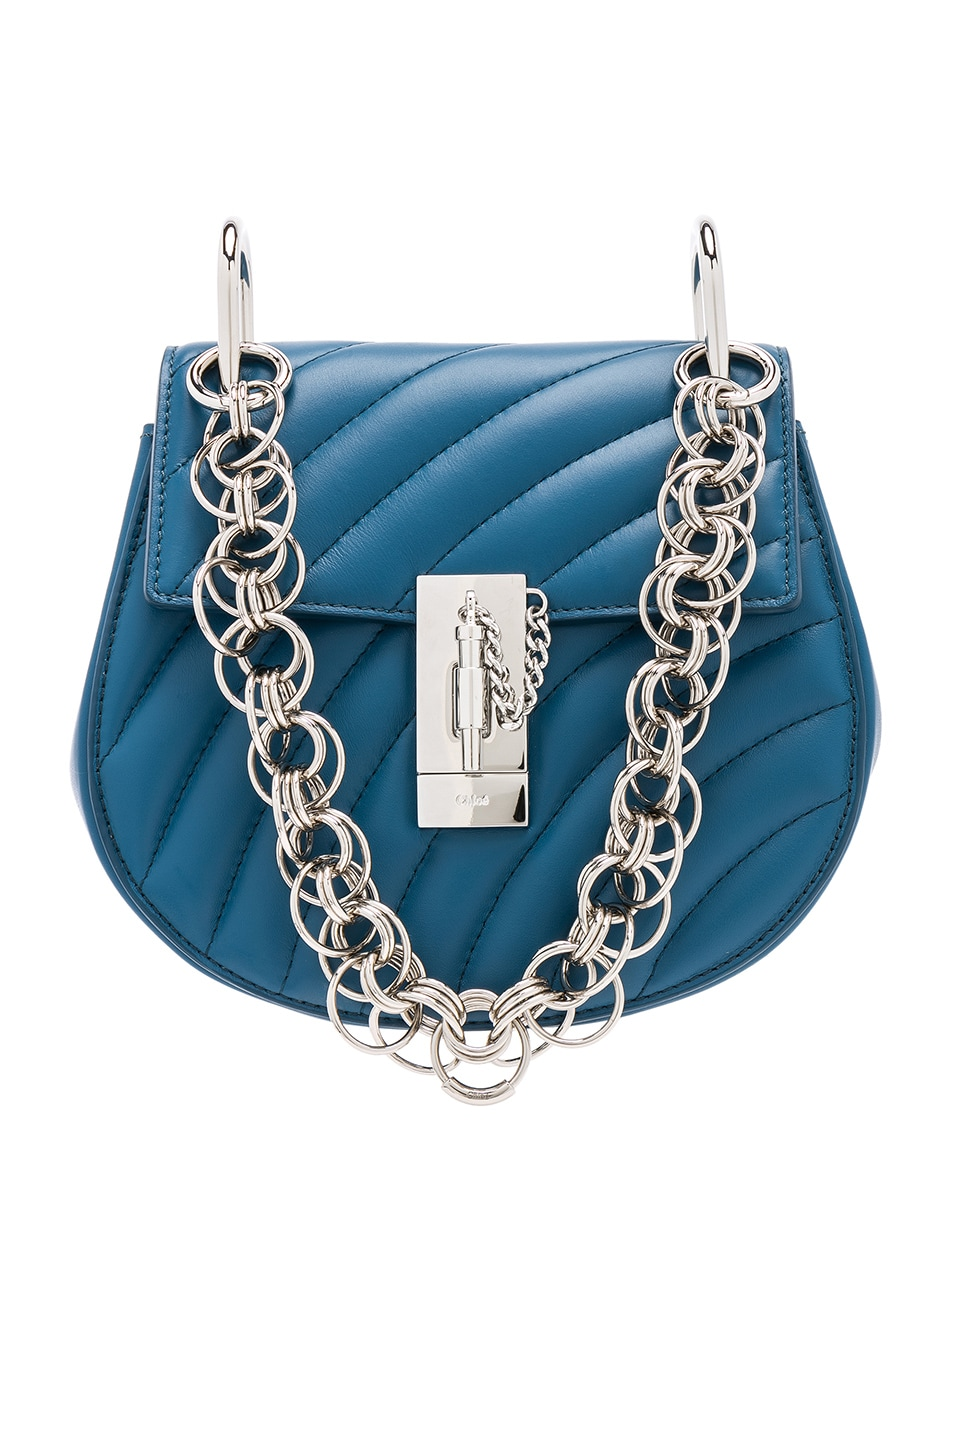 Image 1 of Chloe Mini Drew Bijou Quilted Smooth Calfskin Shoulder Bag in Vinyl Blue & Silver